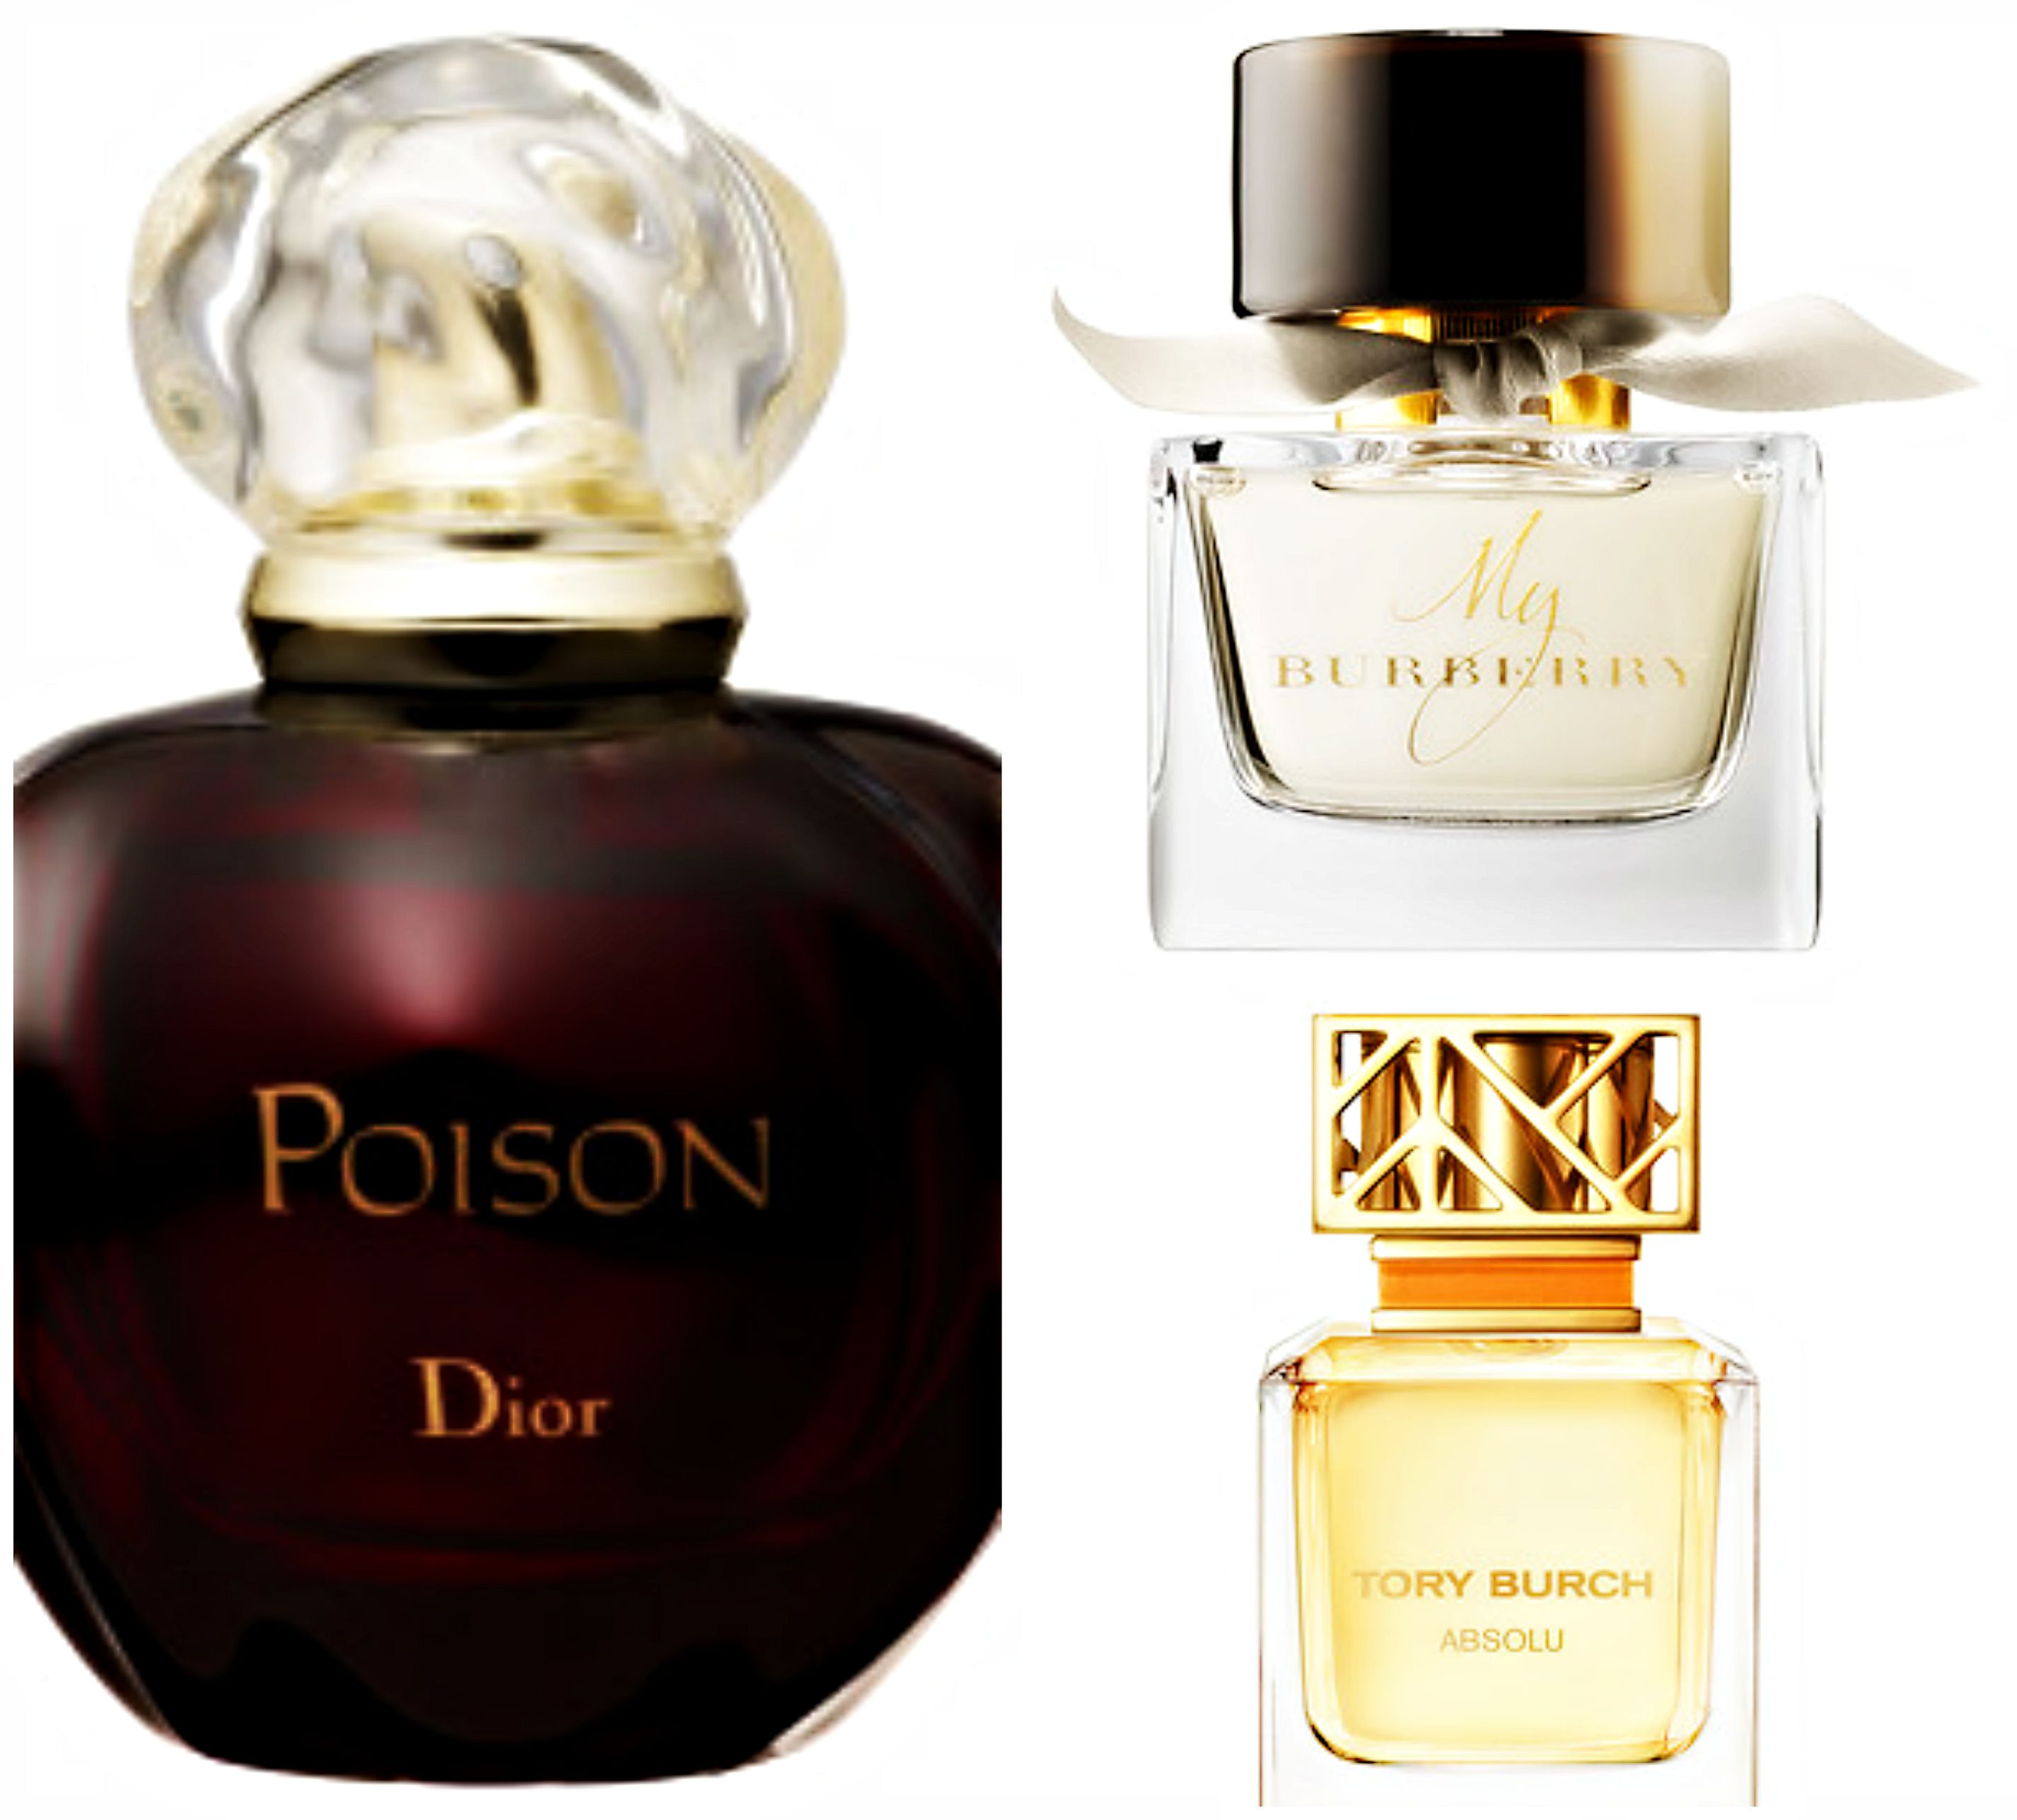 2015 Fall 2016 Winter Fragrances & Perfumes for Women